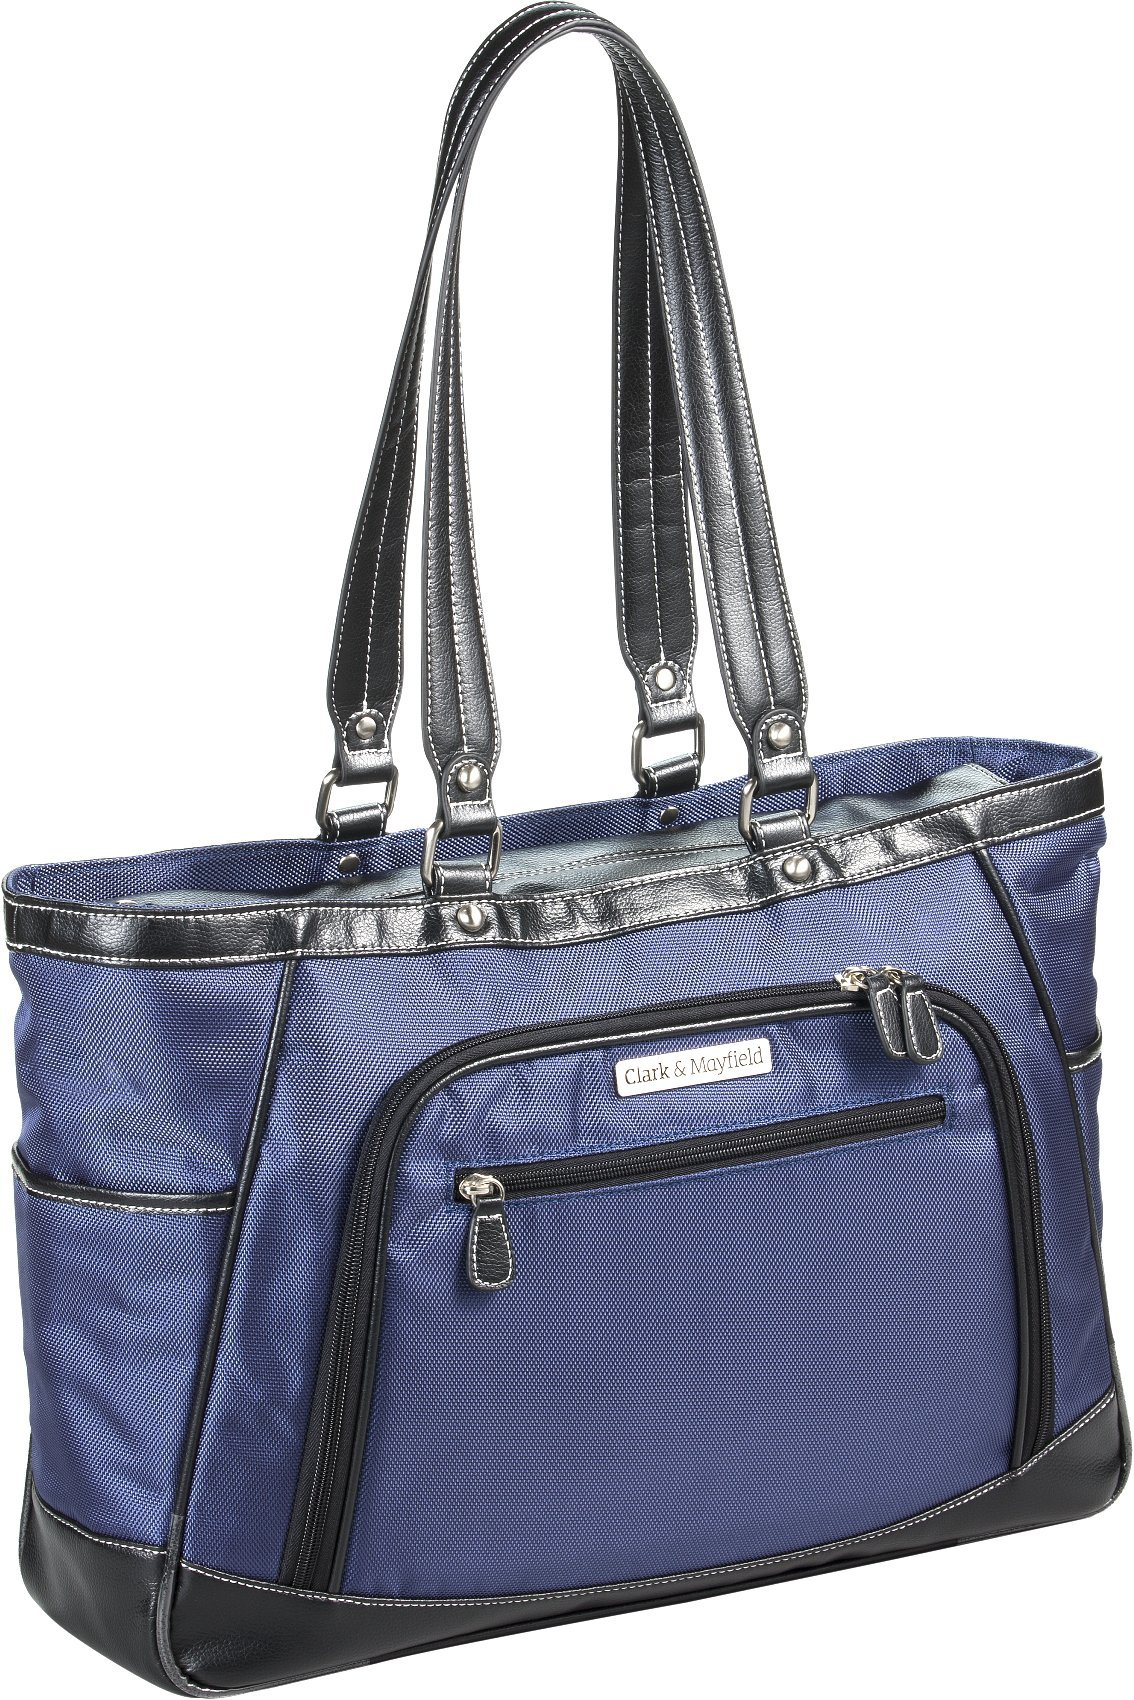 Clark & Mayfield Sellwood Metro XL 17.3'' Laptop Tote Navy